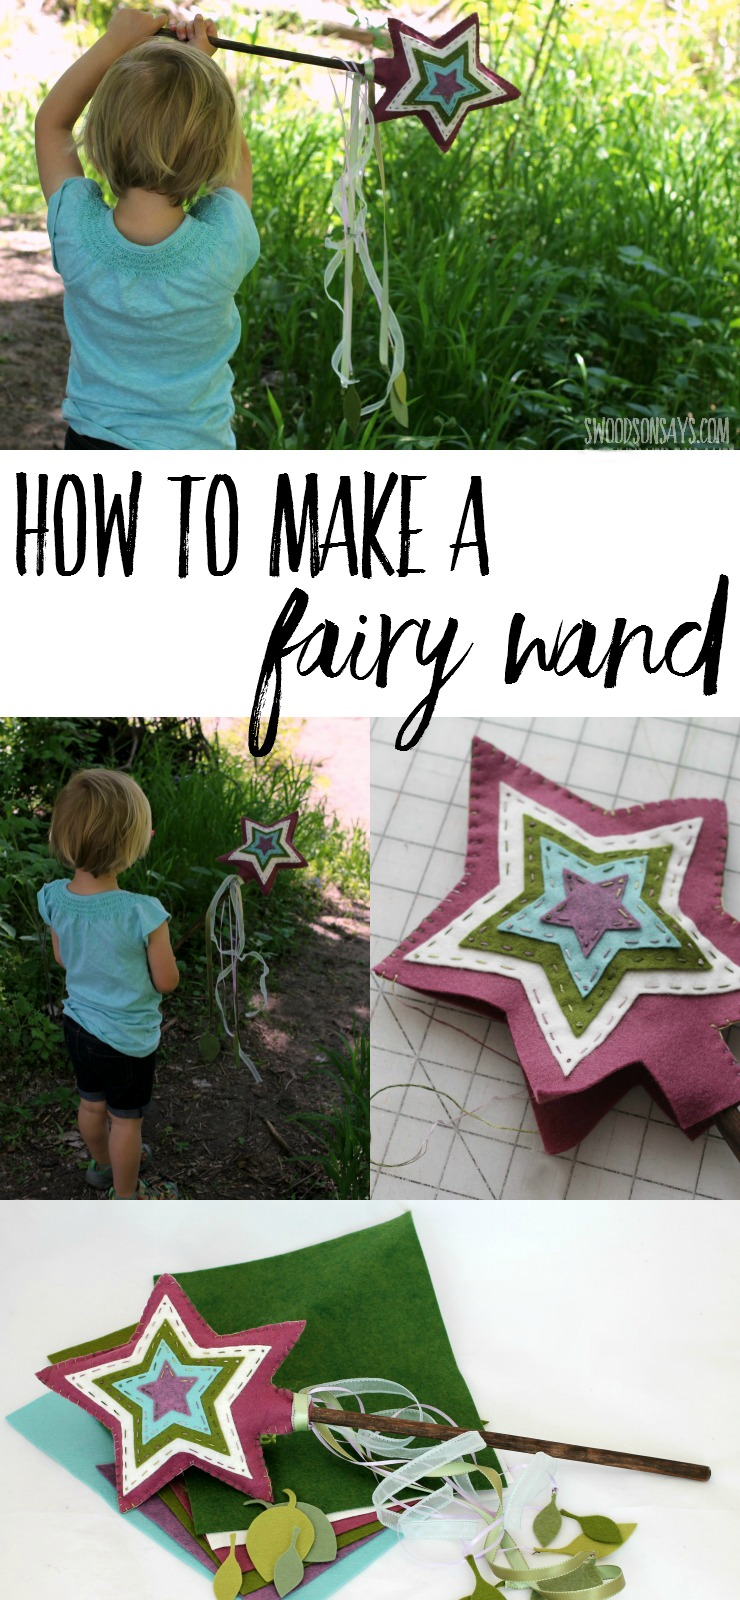 Learn how to make this diy fairy wand with beautiful wool blend felt, ribbon, and a spoon (super strong, so it won't break!). It's a perfect forest fairy accessory - free fairy wand pattern in a sponsored post.